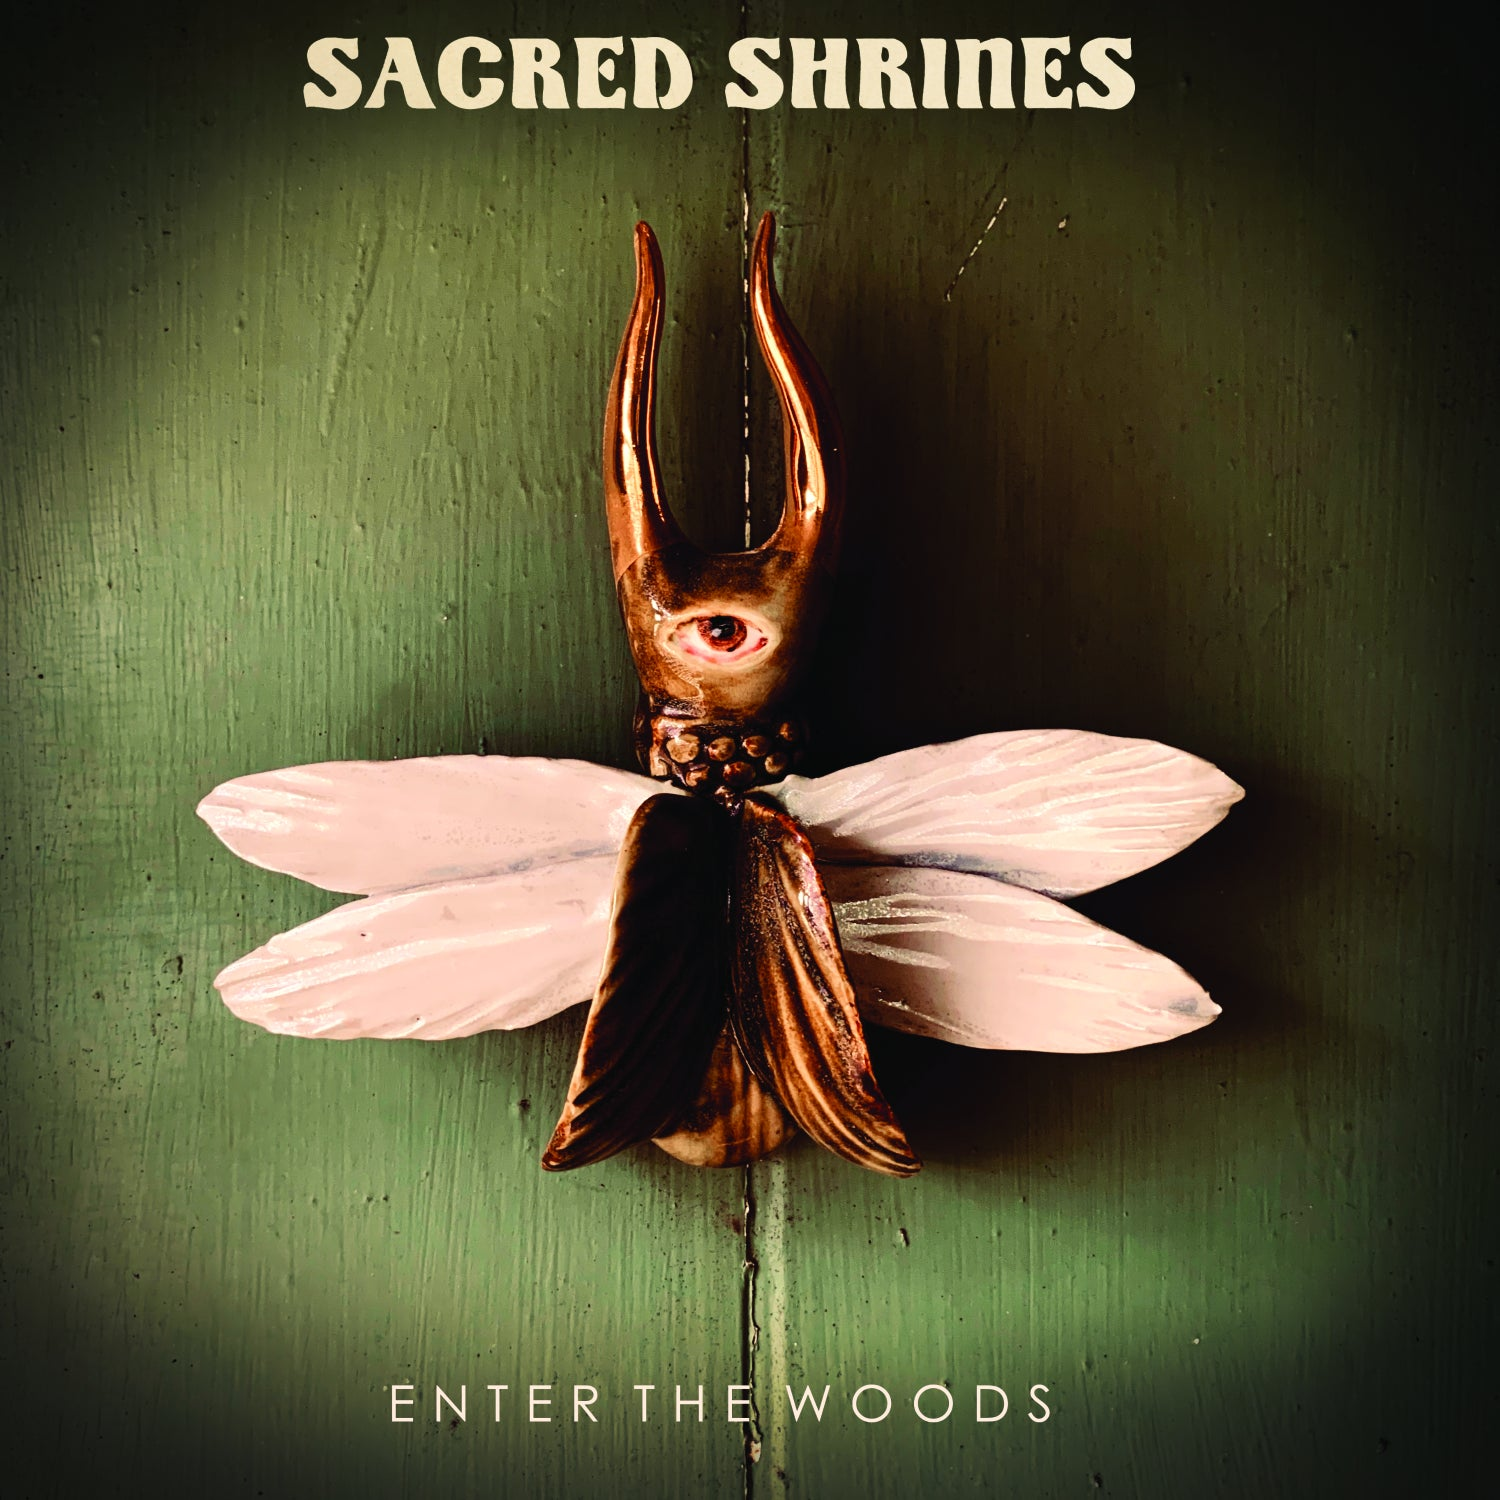 Image of Sacred Shrines - Enter the Woods Deluxe Vinyl Editions